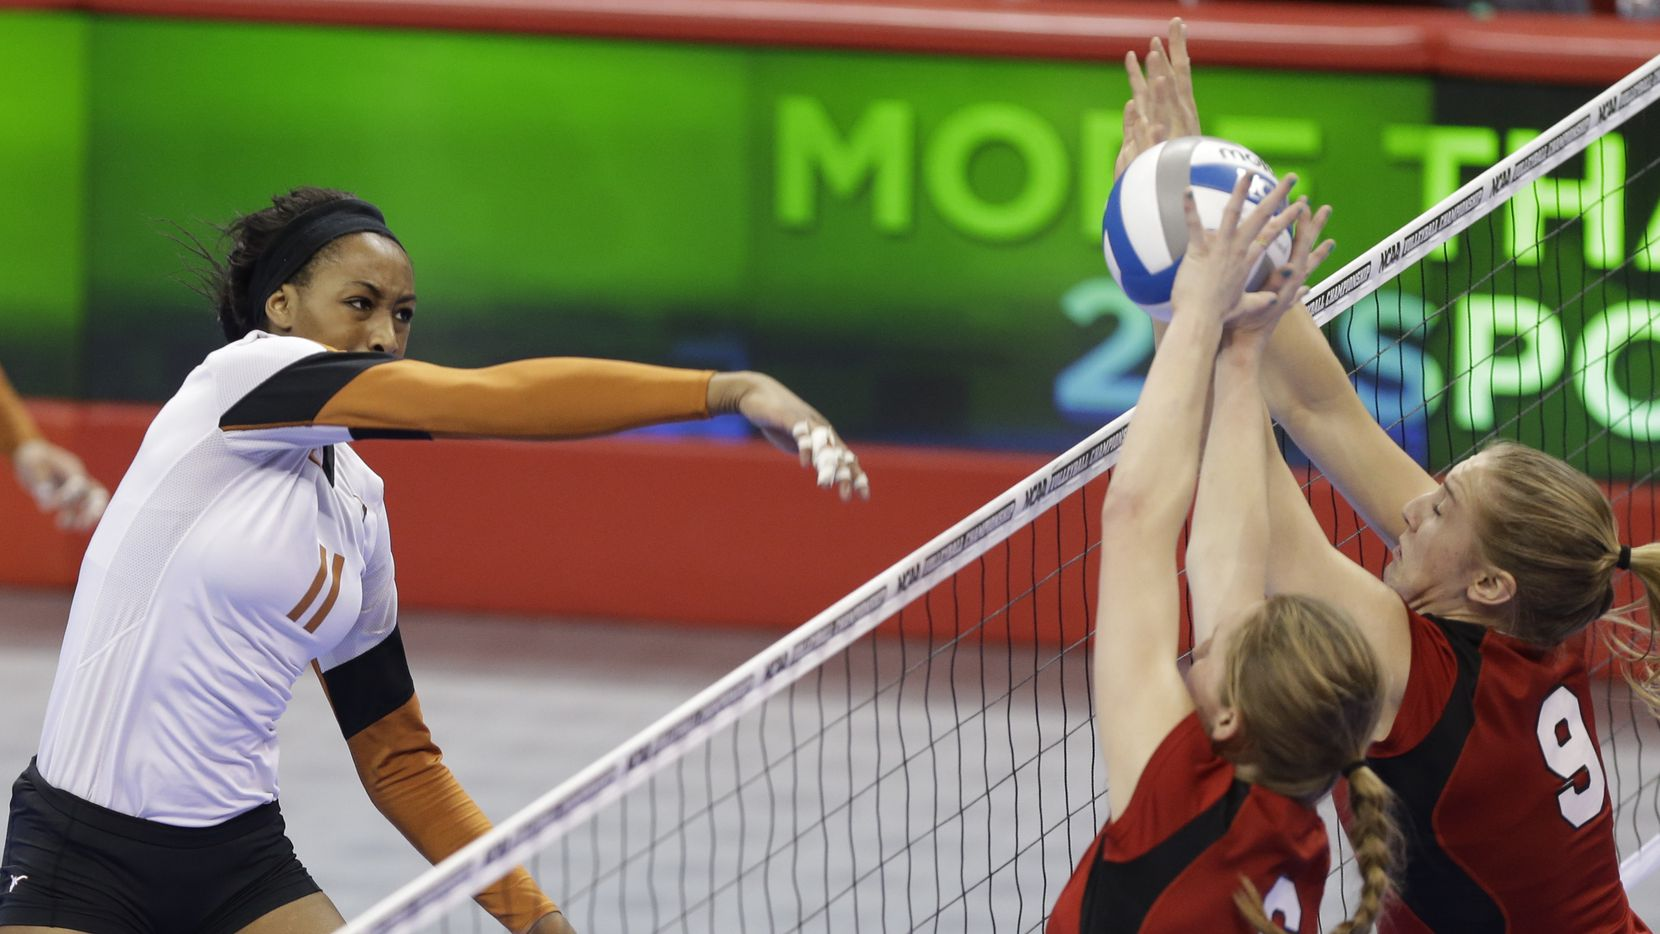 Texas' Chiaka Ogbogu (11) goes for a kill against the block of Nebraska's Kadie Rolfzen (6) and Cecilia Hall (9) in the finals of an NCAA college volleyball regional tournament in Lincoln, Neb., Saturday, Dec. 14, 2013. Texas beat Nebraska in three sets.